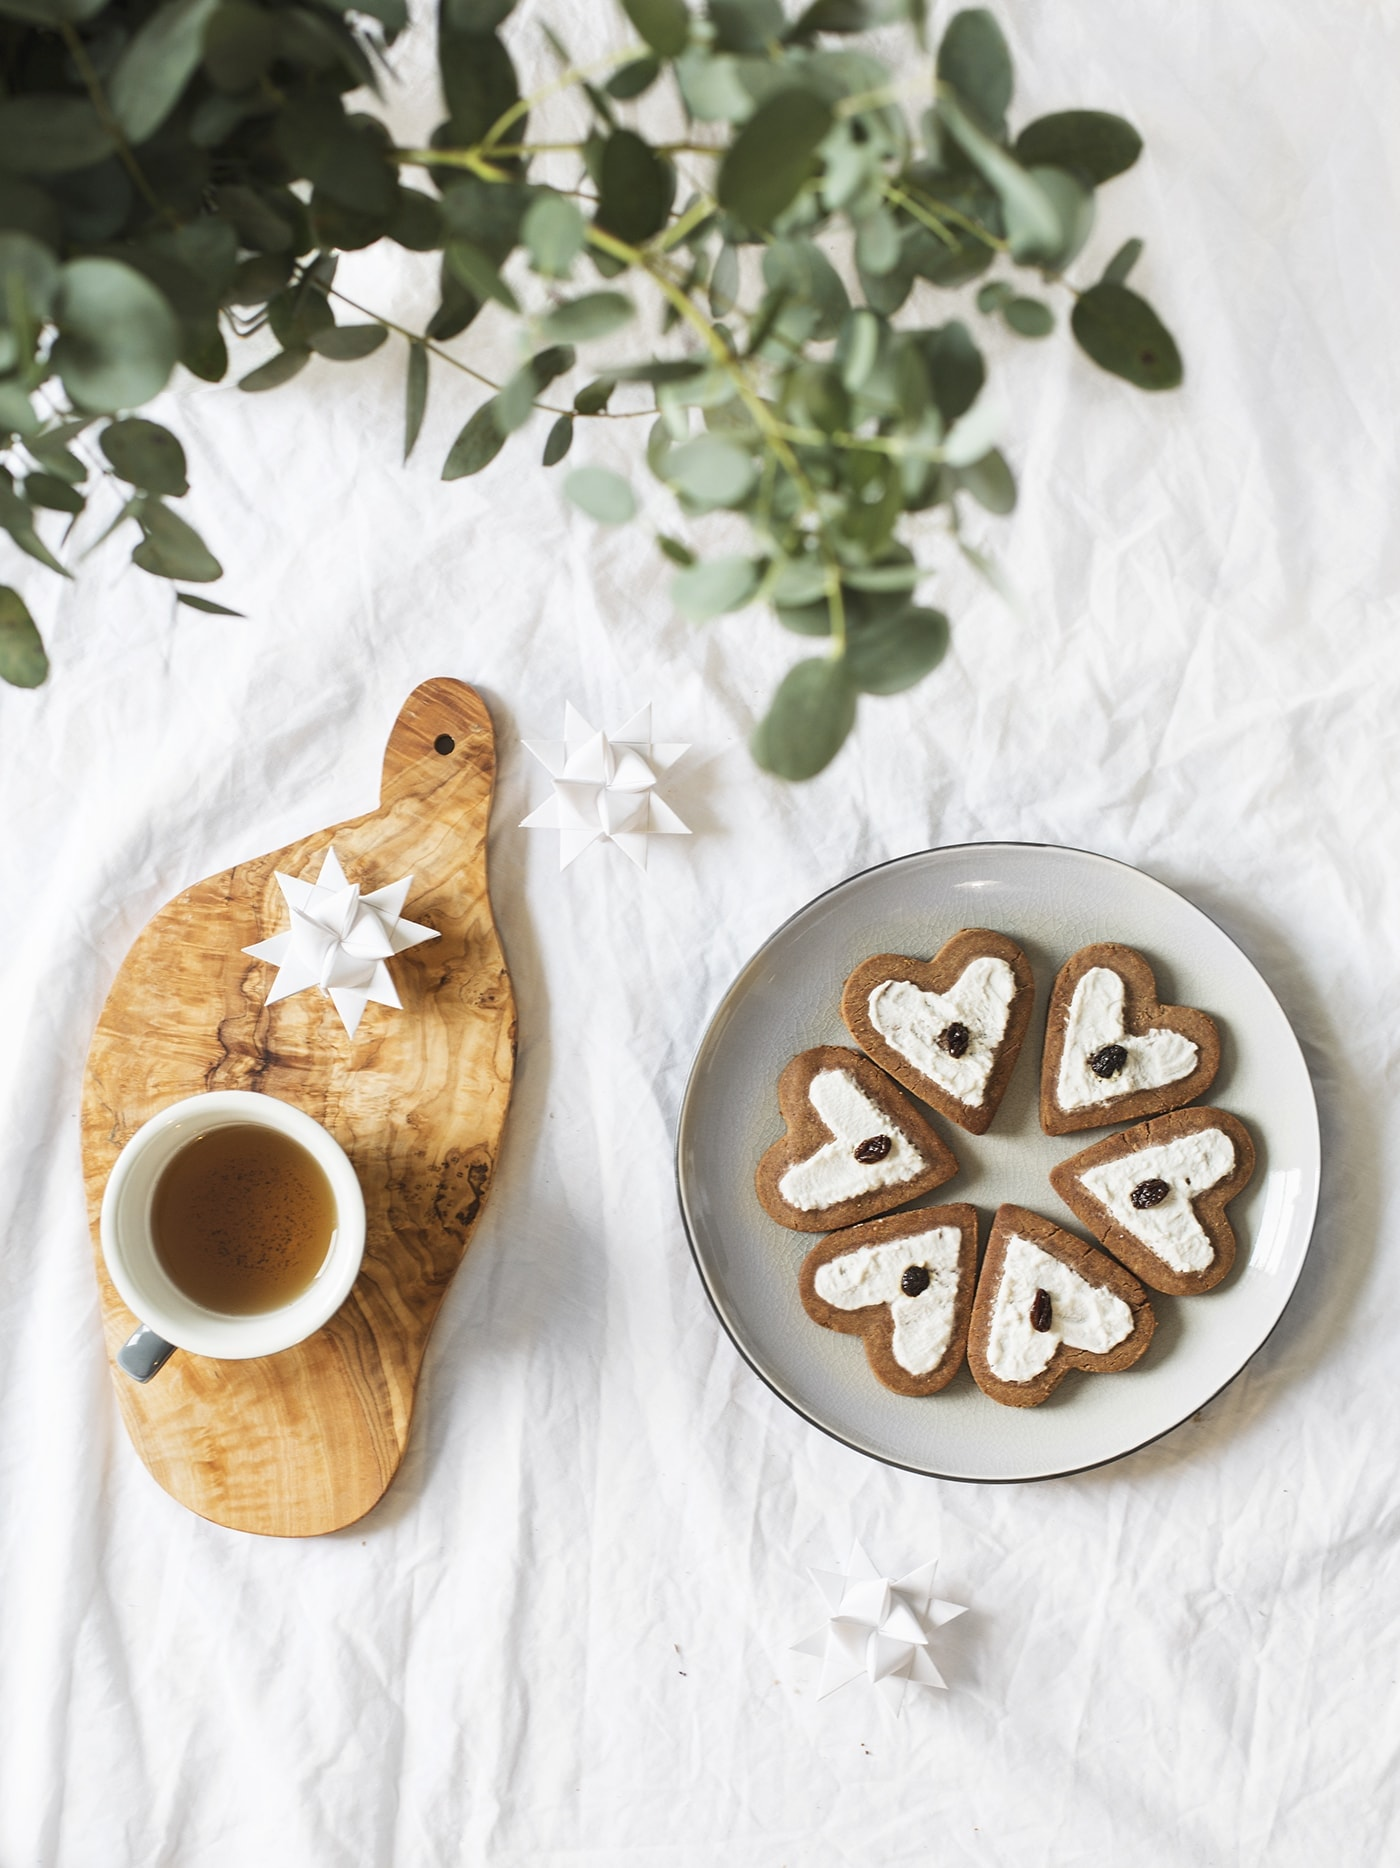 Paleo chestnut flour gingerbread | Christmas sweet treats | gluten free | vegan | refined sugar free